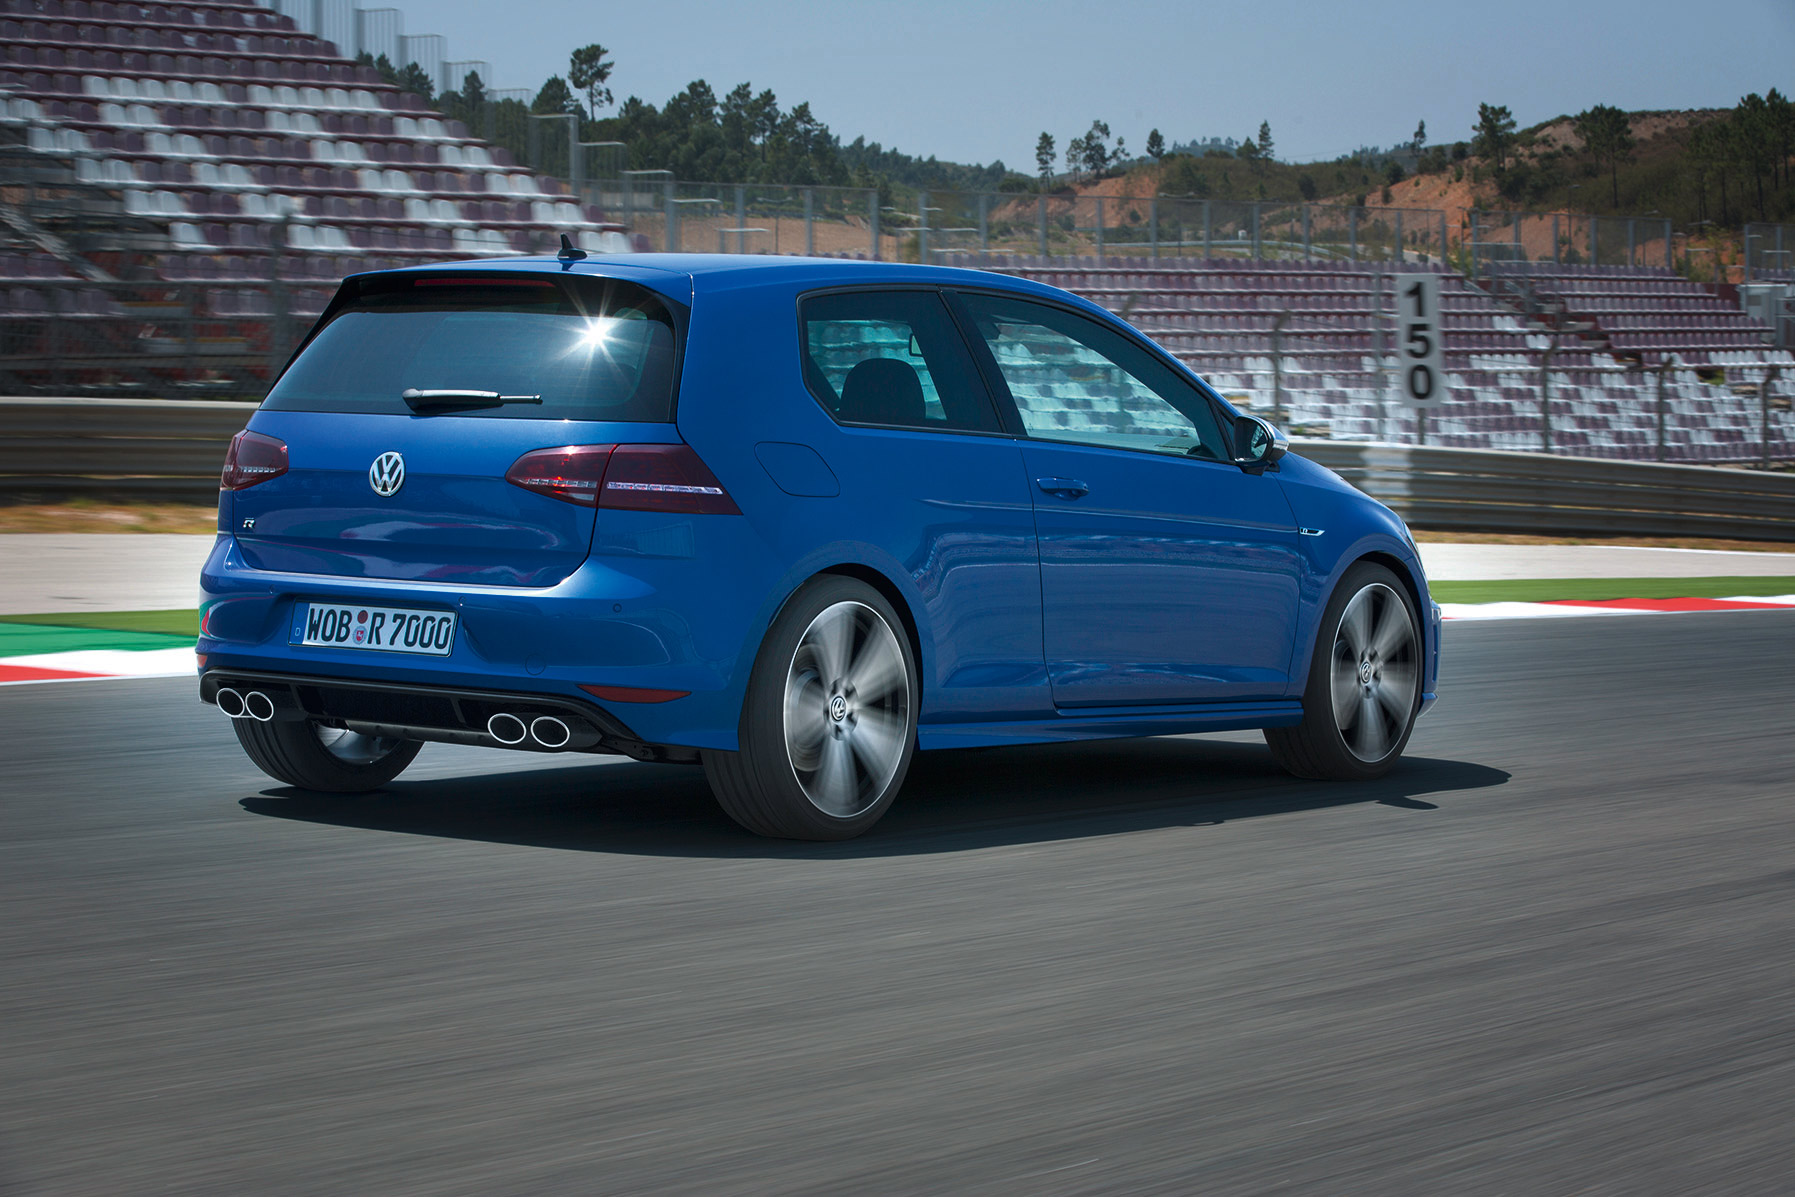 volkswagen-golf-7-r-002